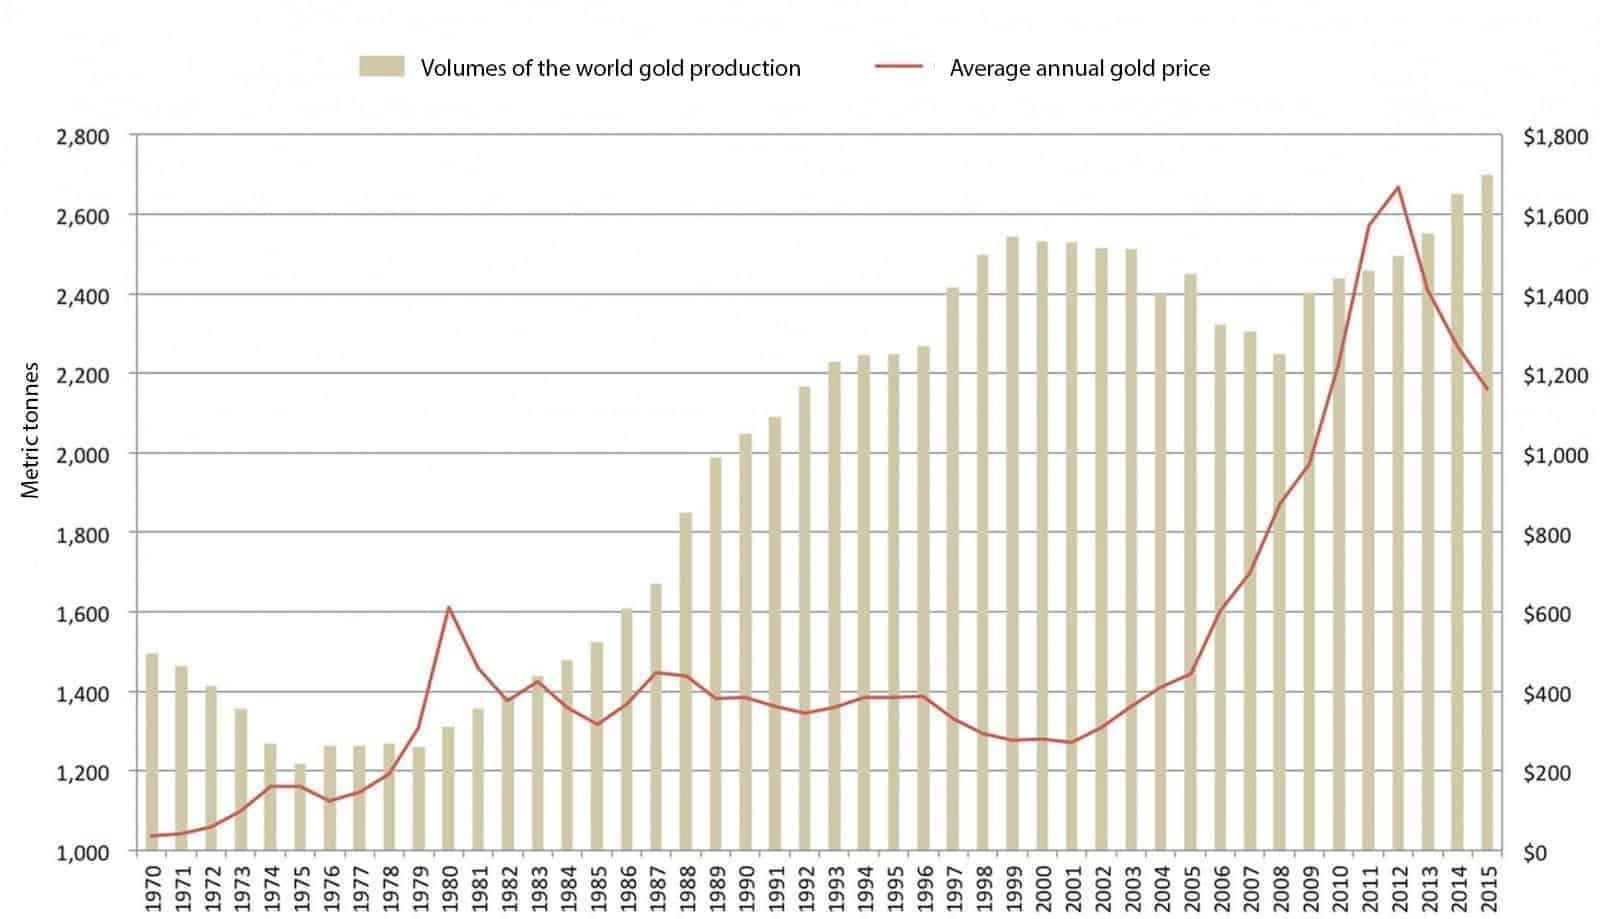 Volumes of the world gold production